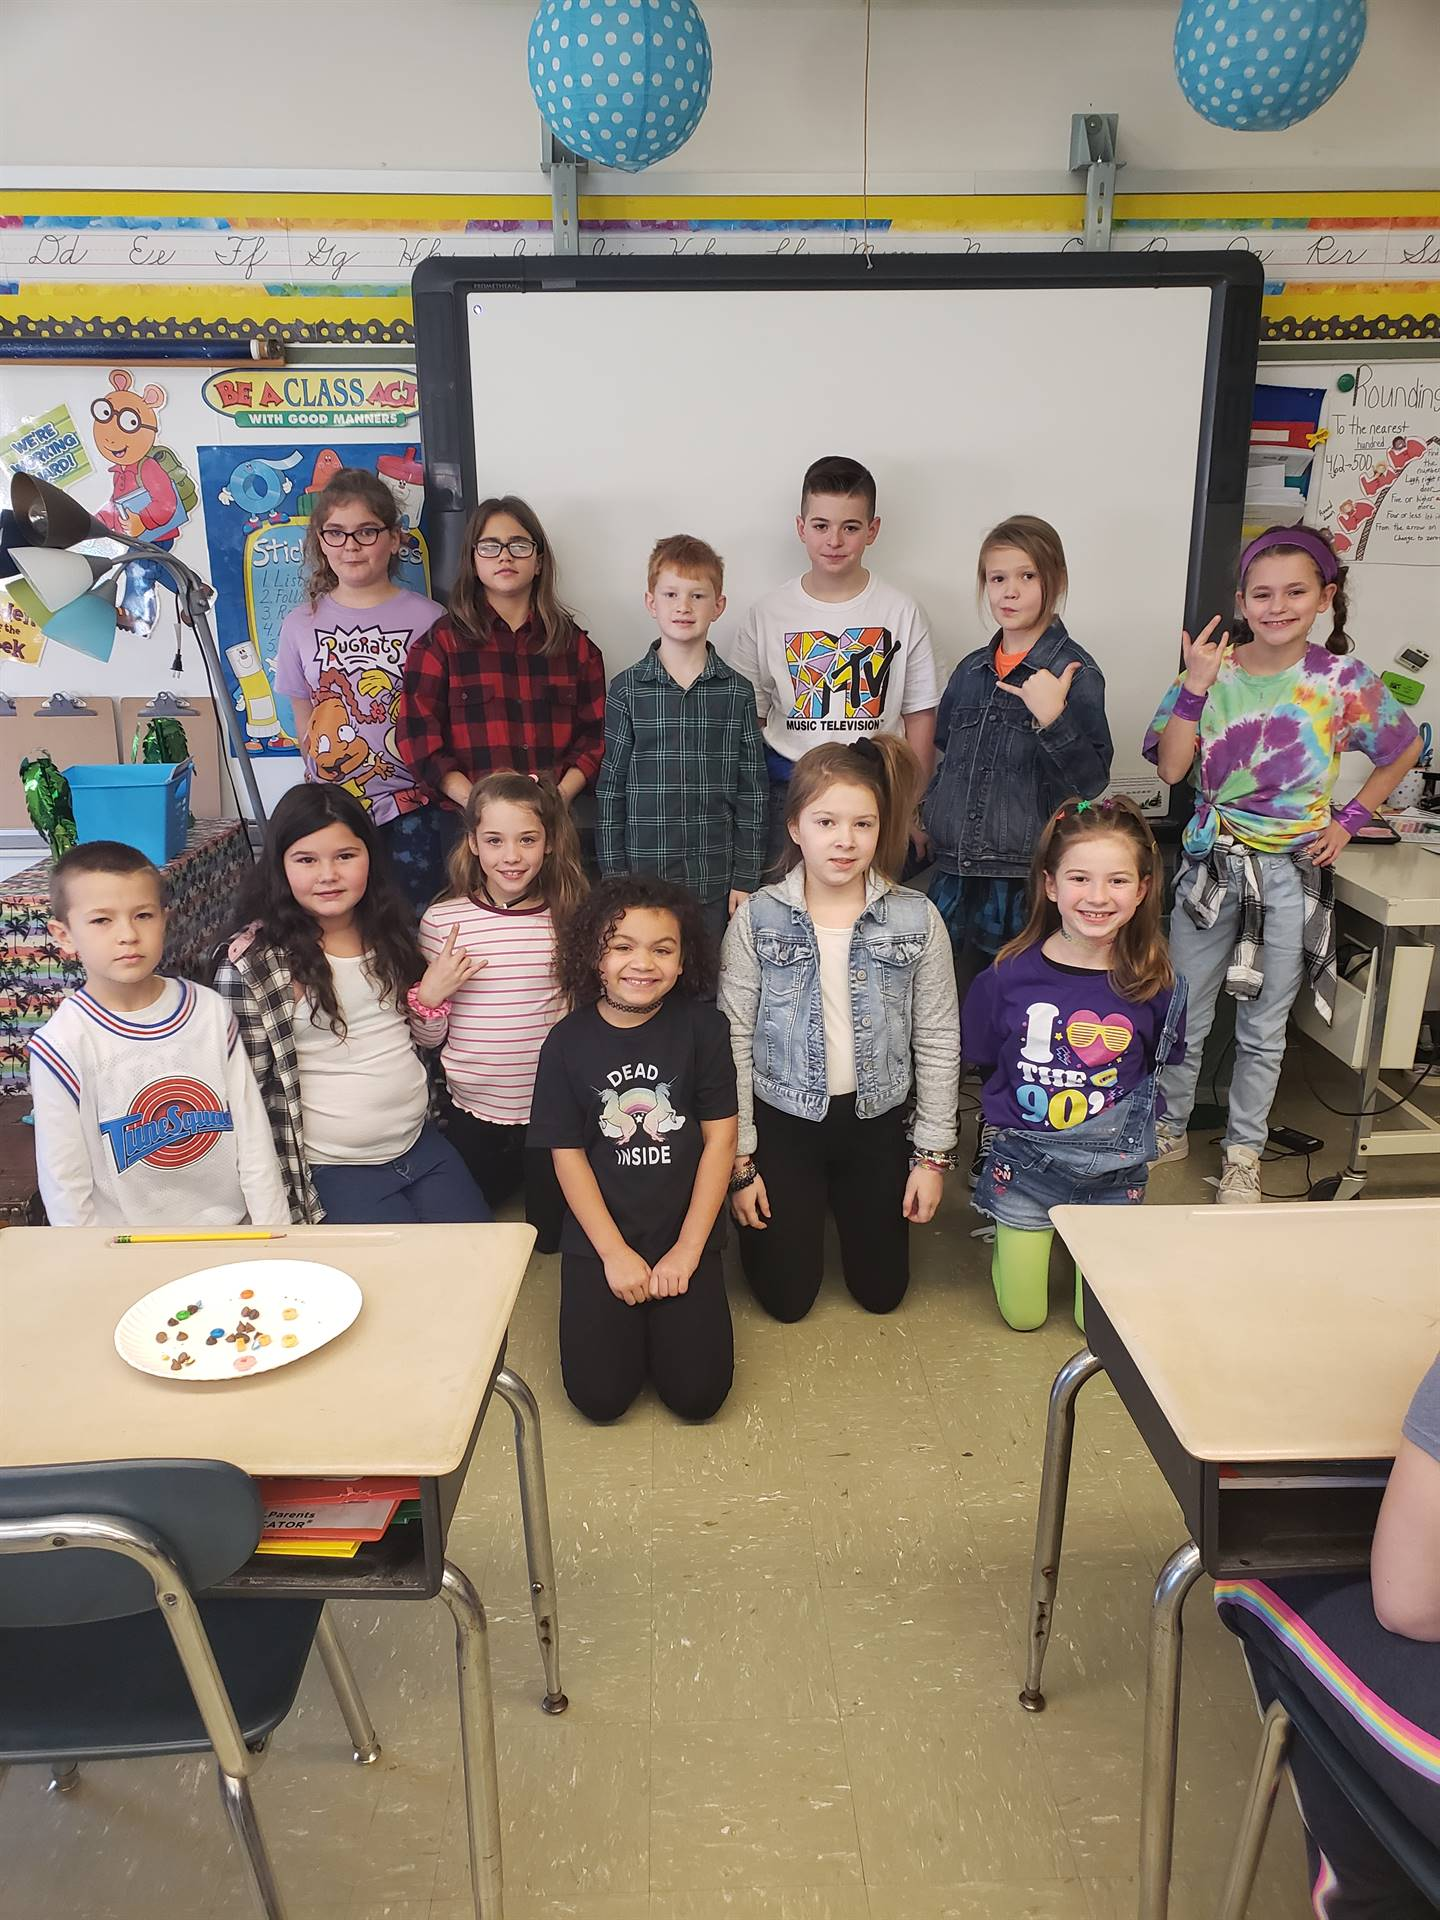 3B-celebrates-The-90th-Day-of-School